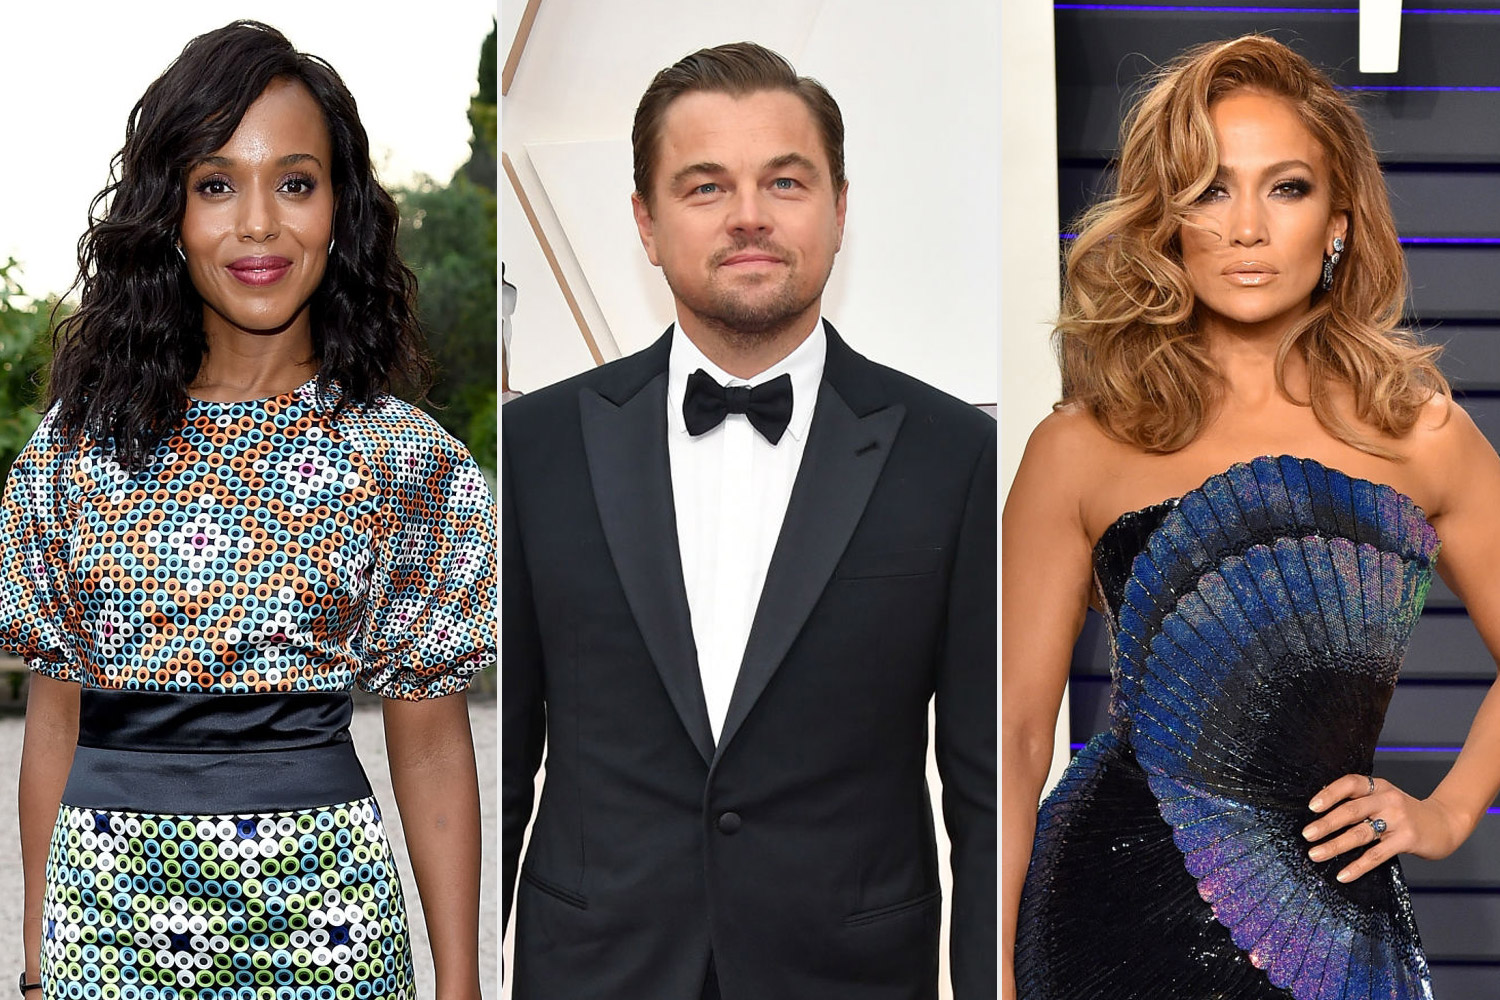 Jennifer Lopez, Leonardo DiCaprio, and Kerry Washington